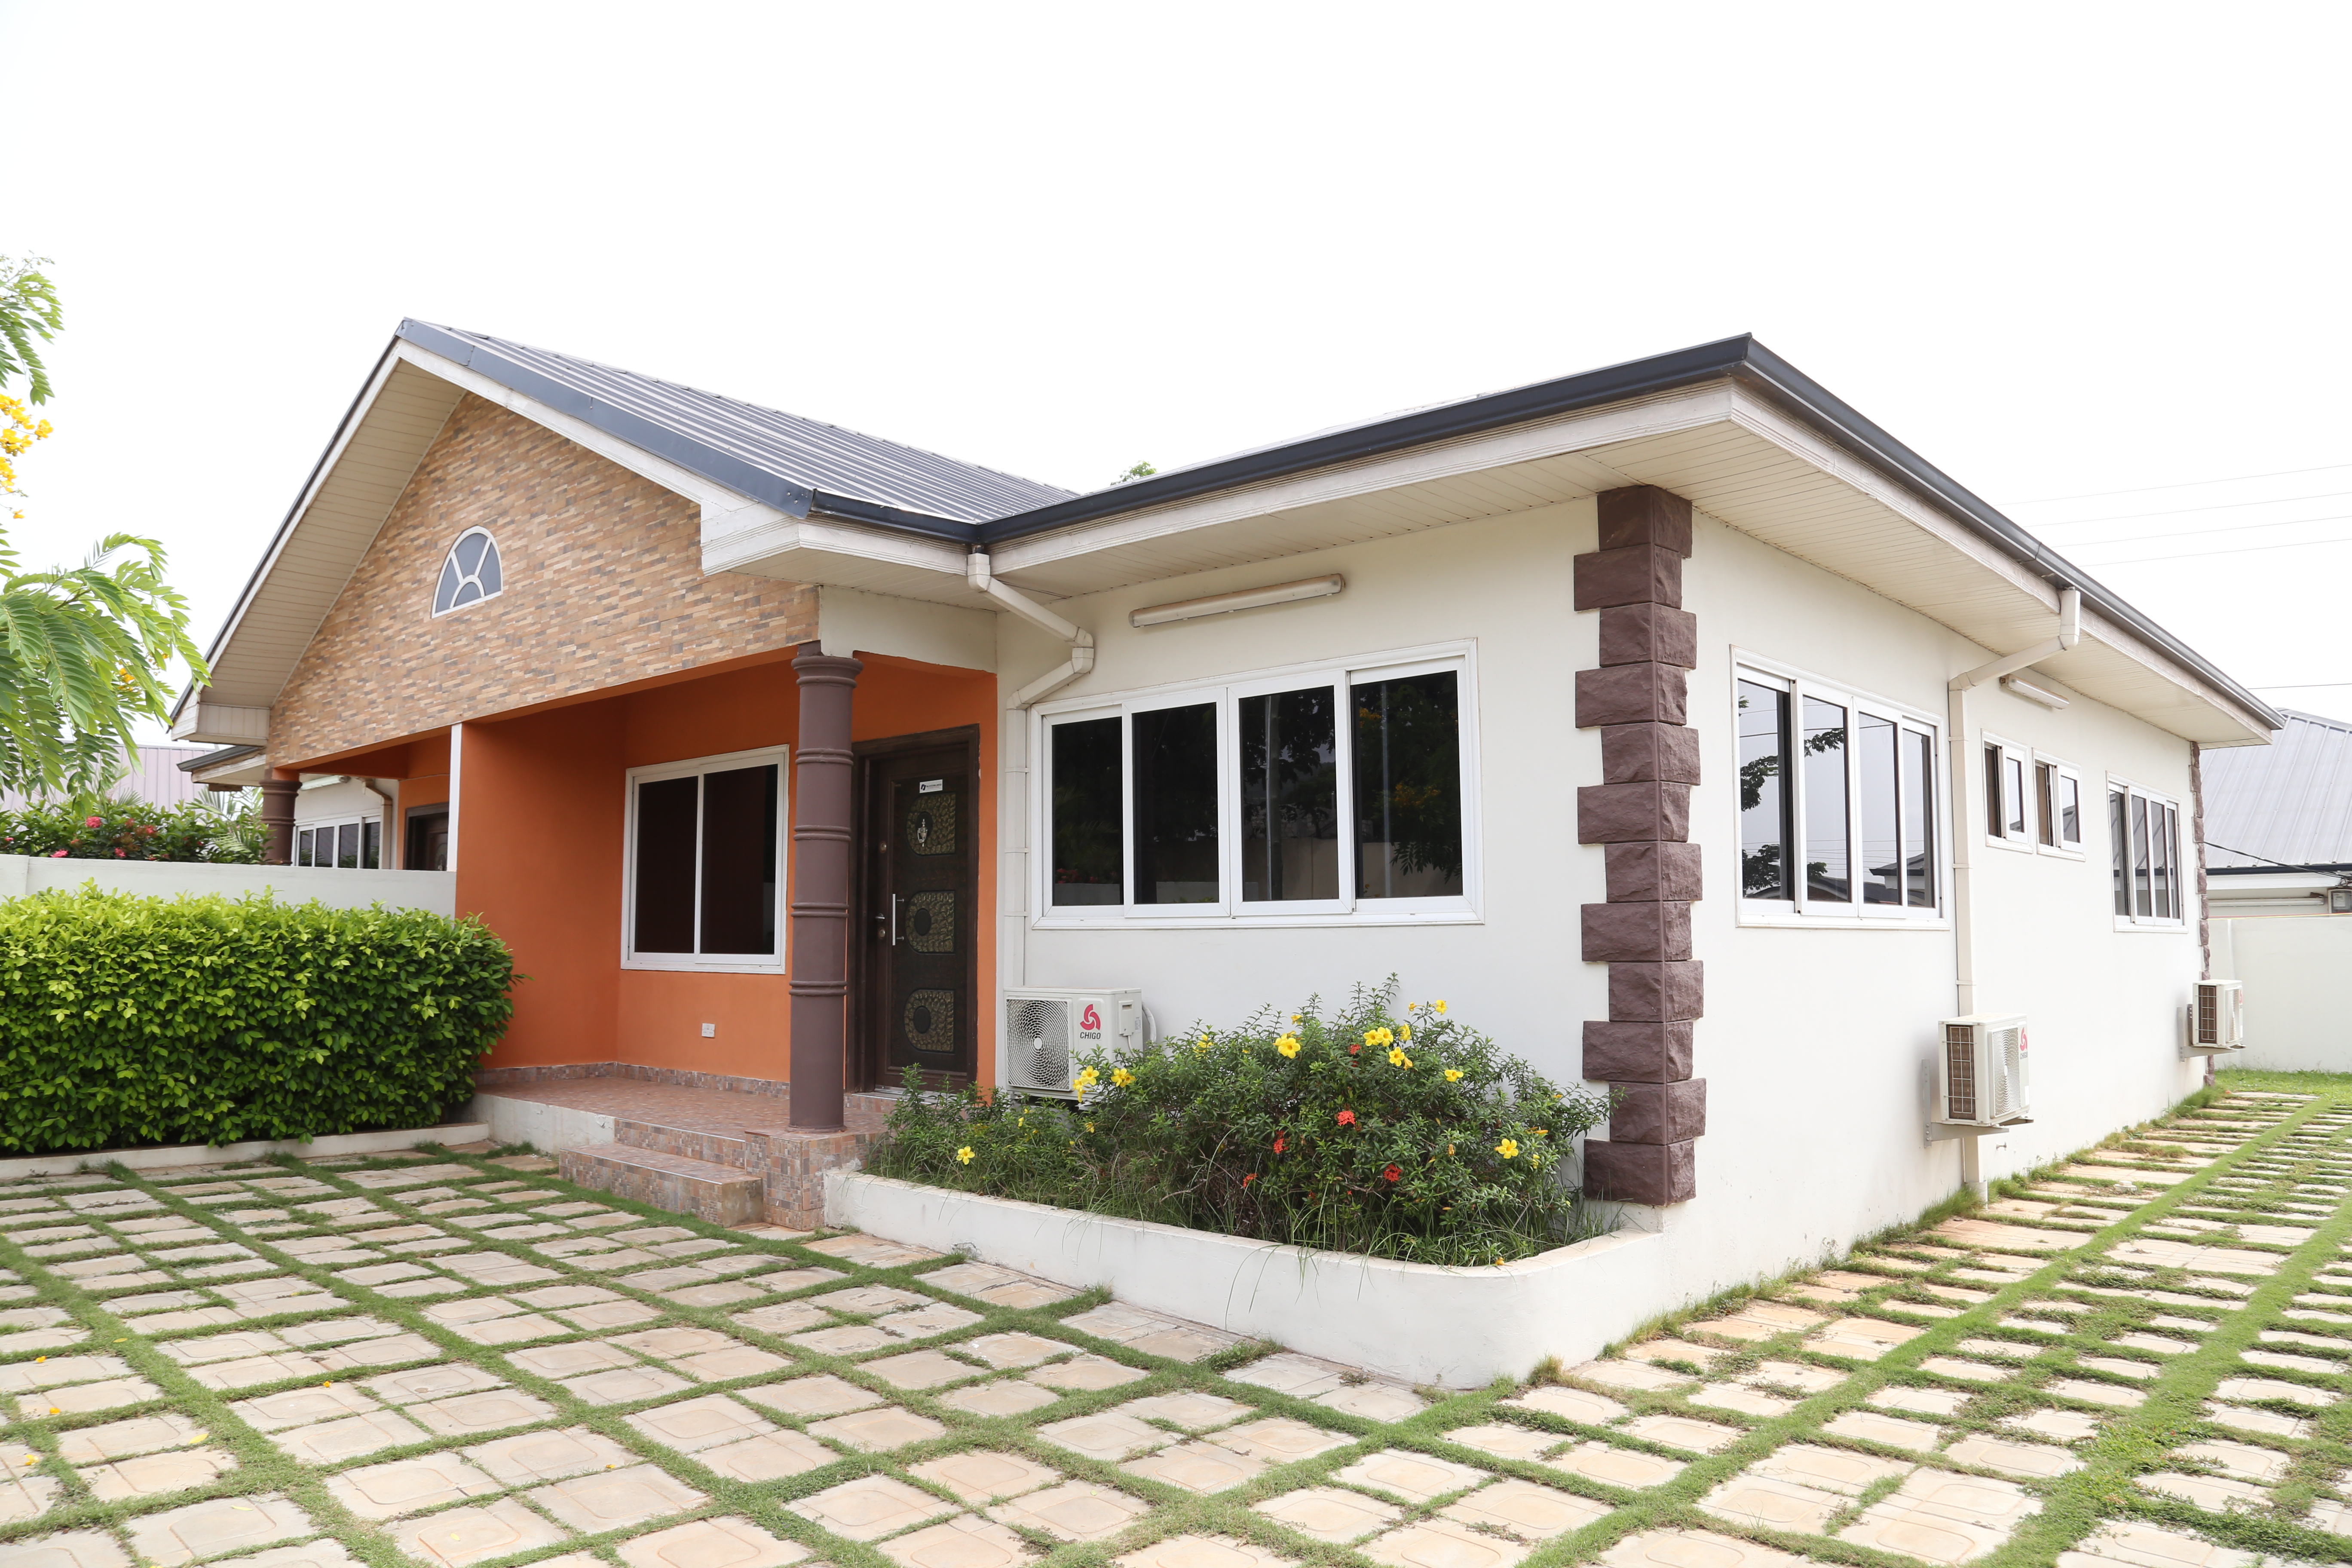 Real estate developer rehoboth properties limited accra